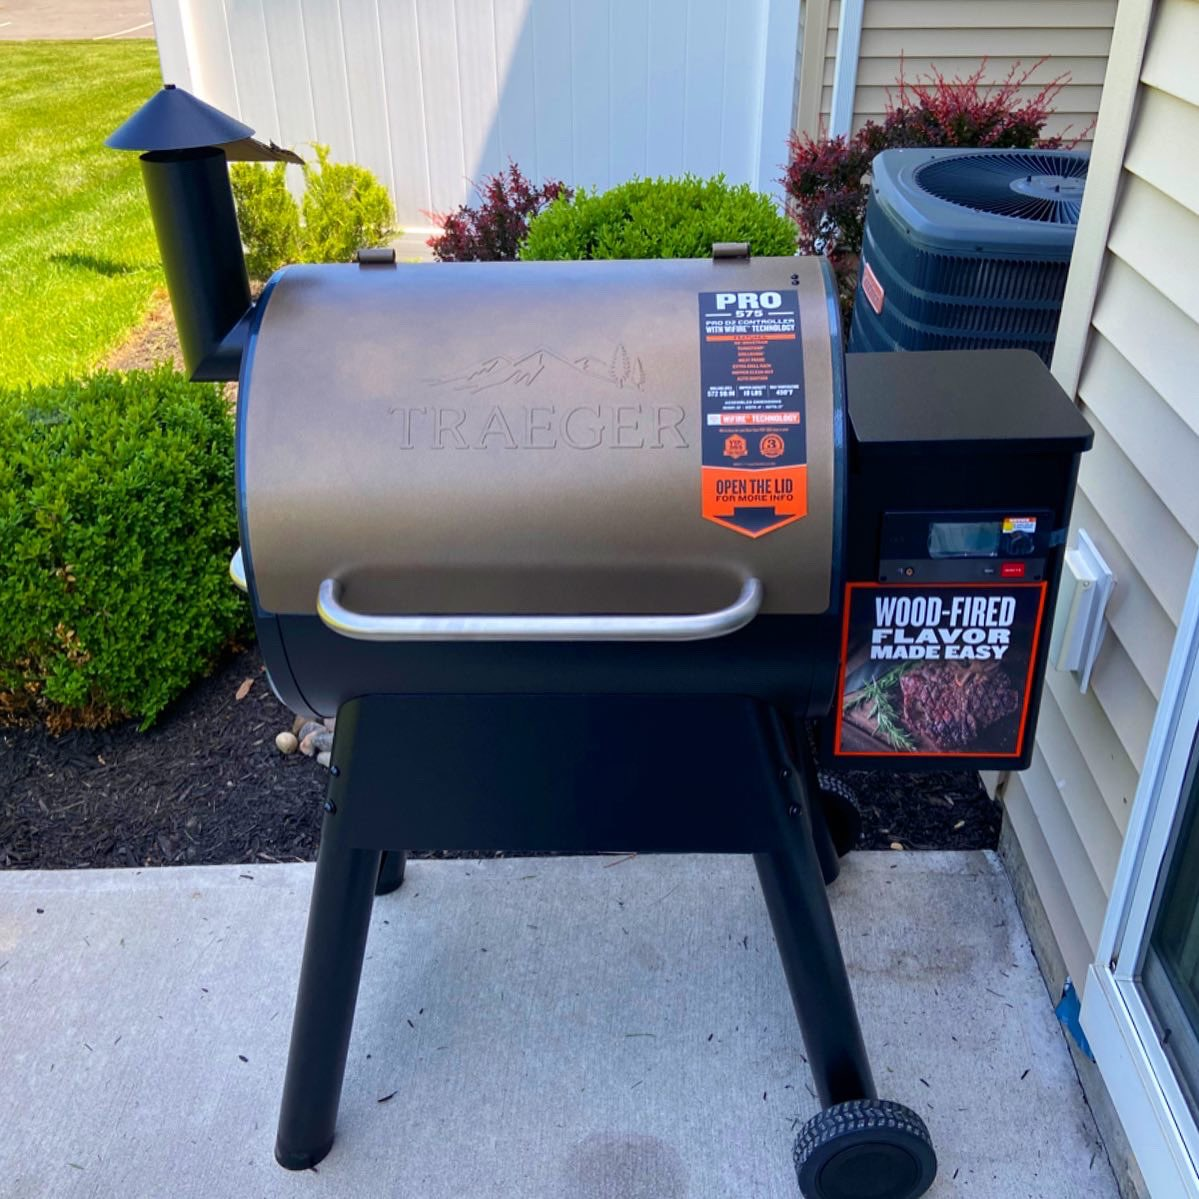 Just for the record...I am so proud to be part of the @TraegerGrills community! I recently had to reach out to them for some support with my new grill and their customer support has been beyond amazing! I truly believe everyone should own a #TraegerGrill - Trust me!! #LiveDreamBe https://t.co/0h8VjS9Ojs